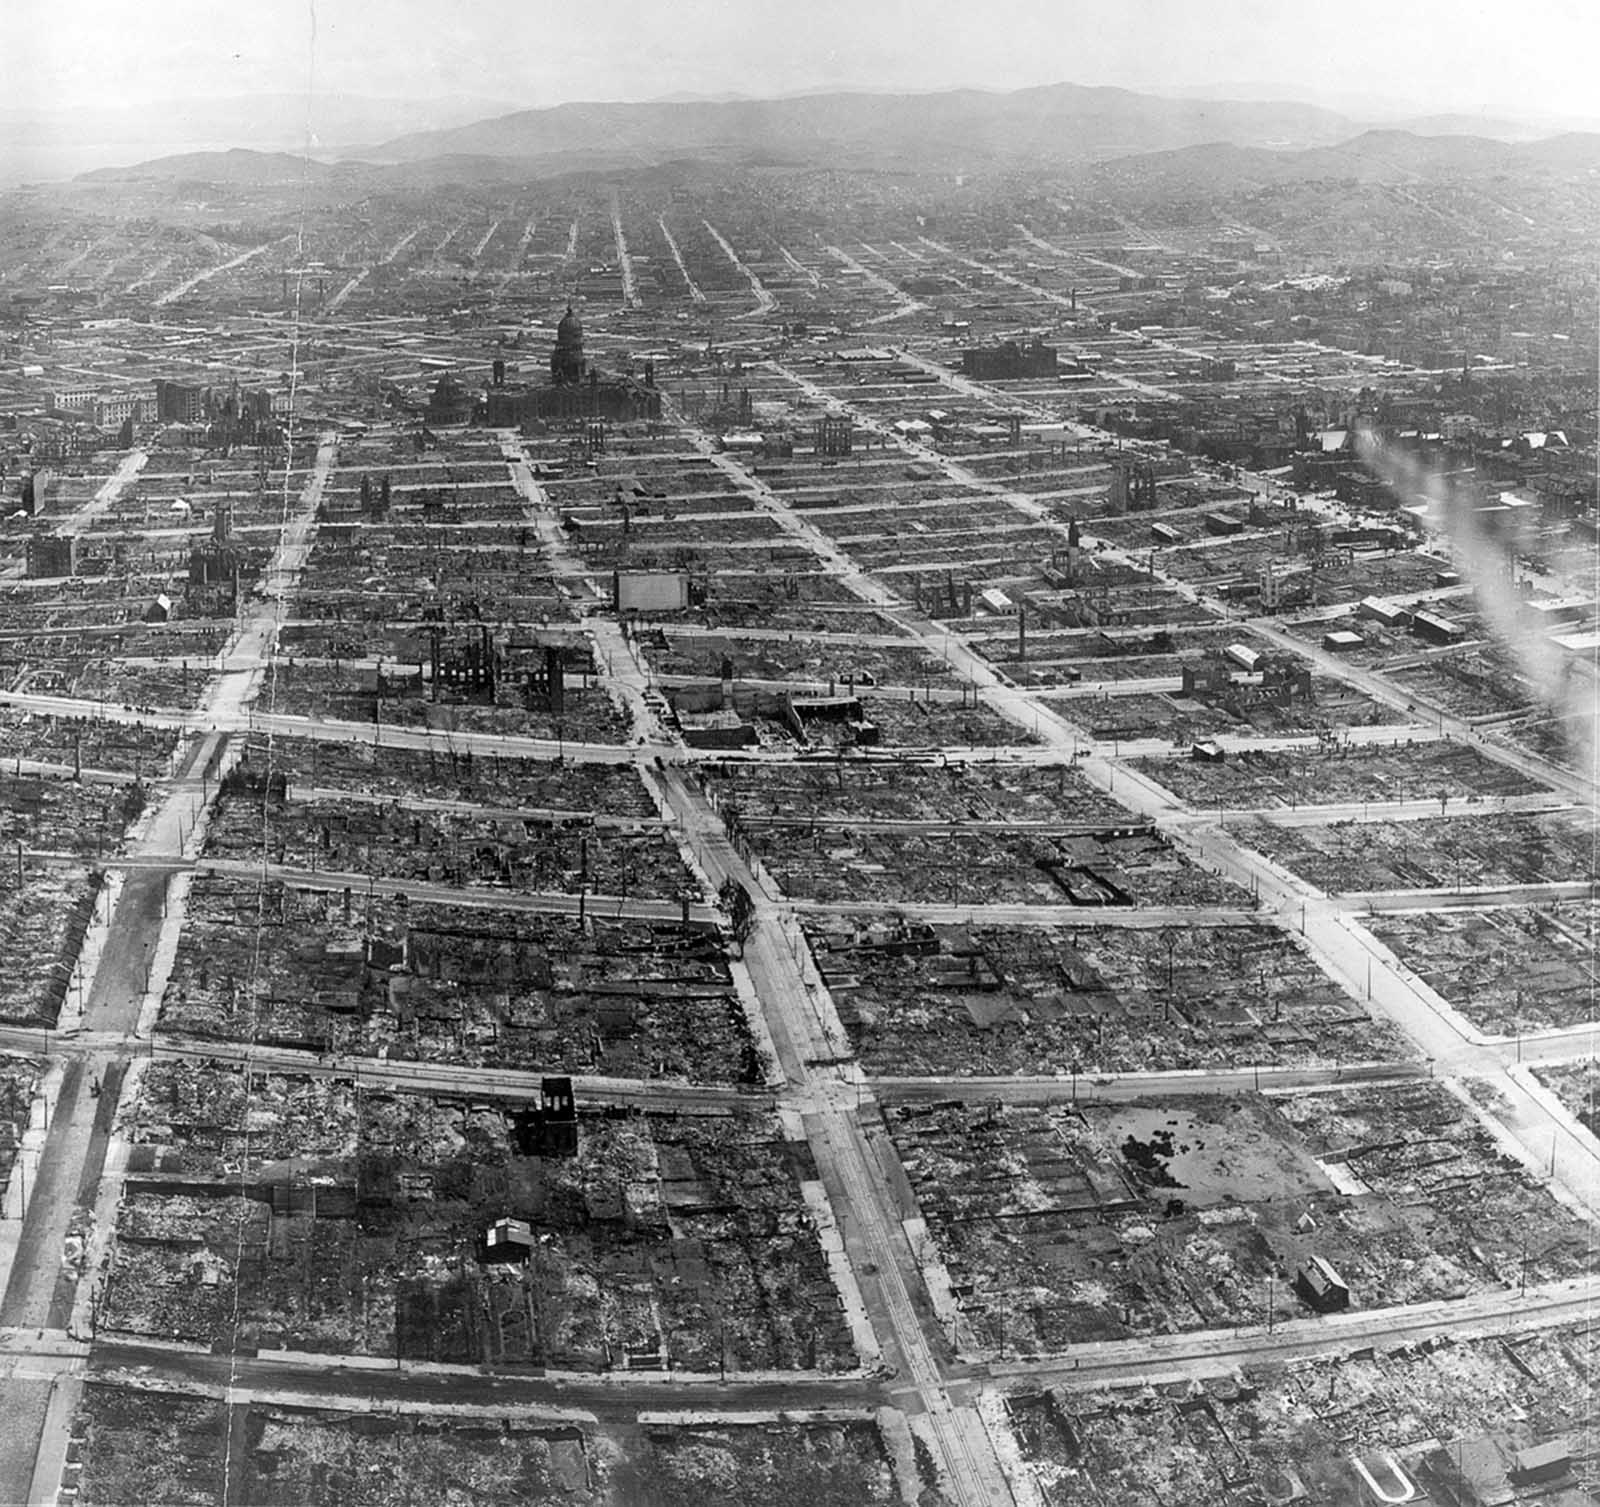 Detail of the panorama photograph of a ruined San Francisco, viewed from the Lawrence Captive Airship on May 29, 1906.